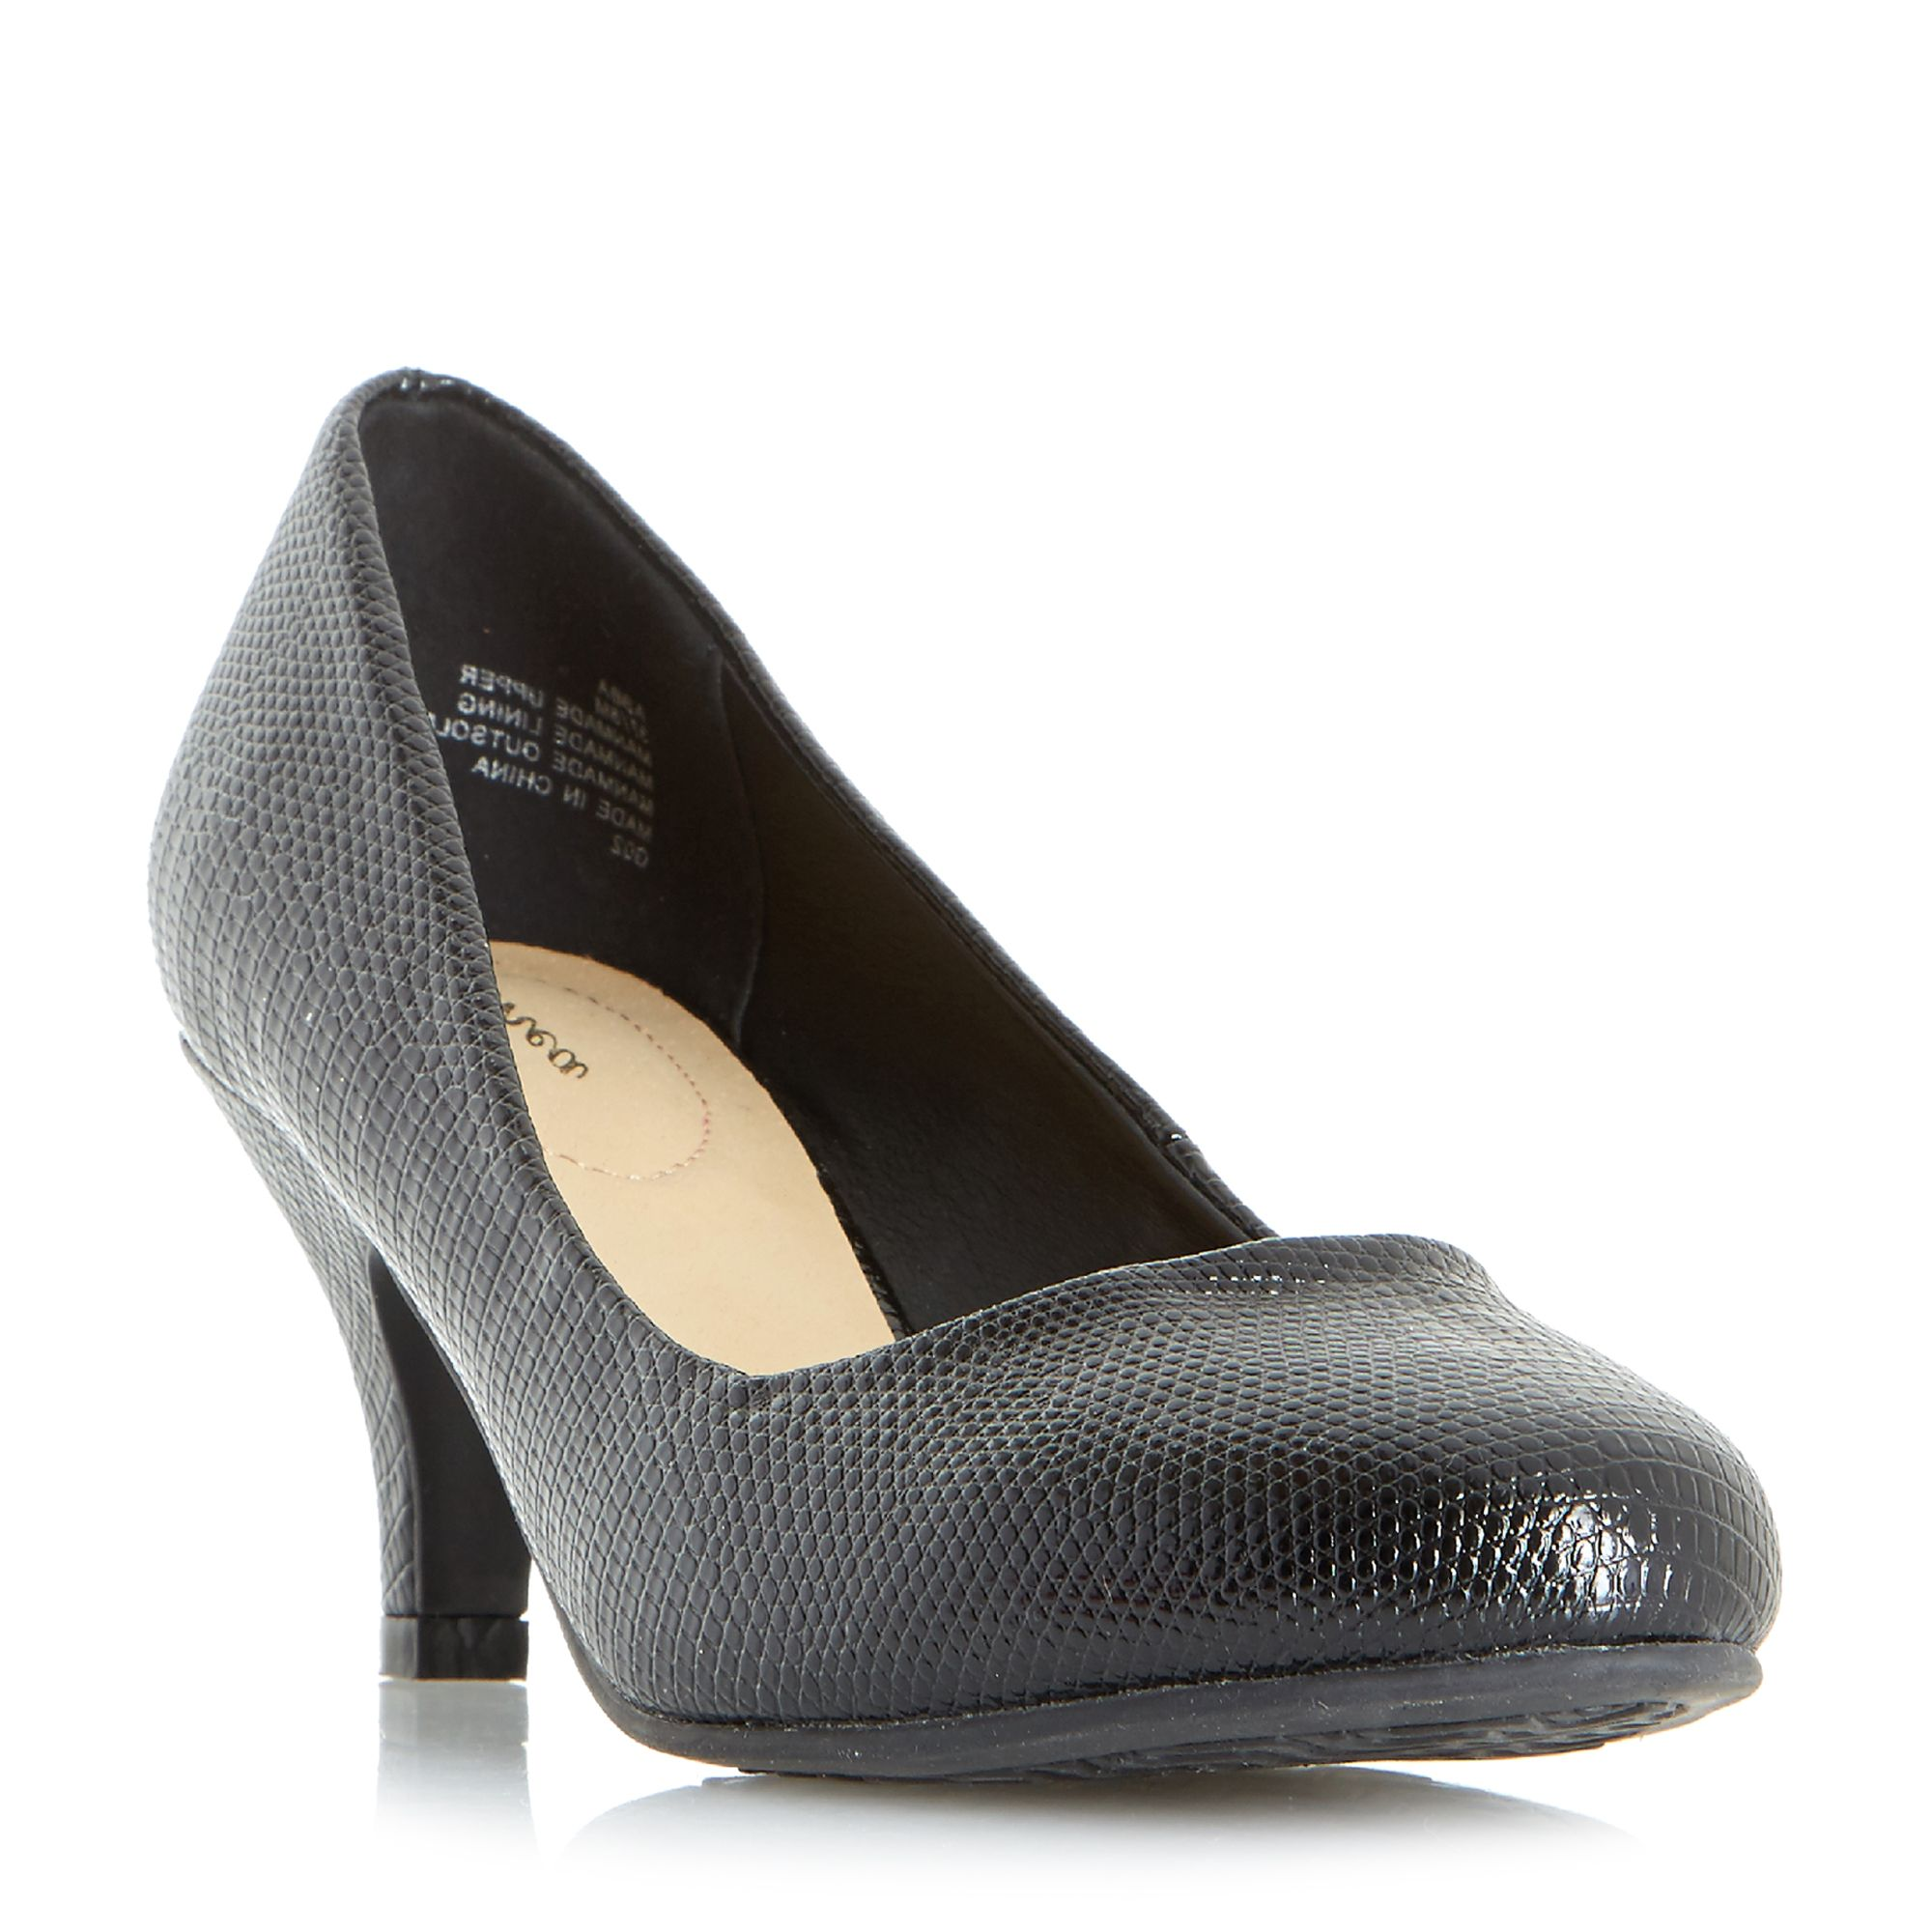 Linea Arabella Almond Toe Court Shoes, Black